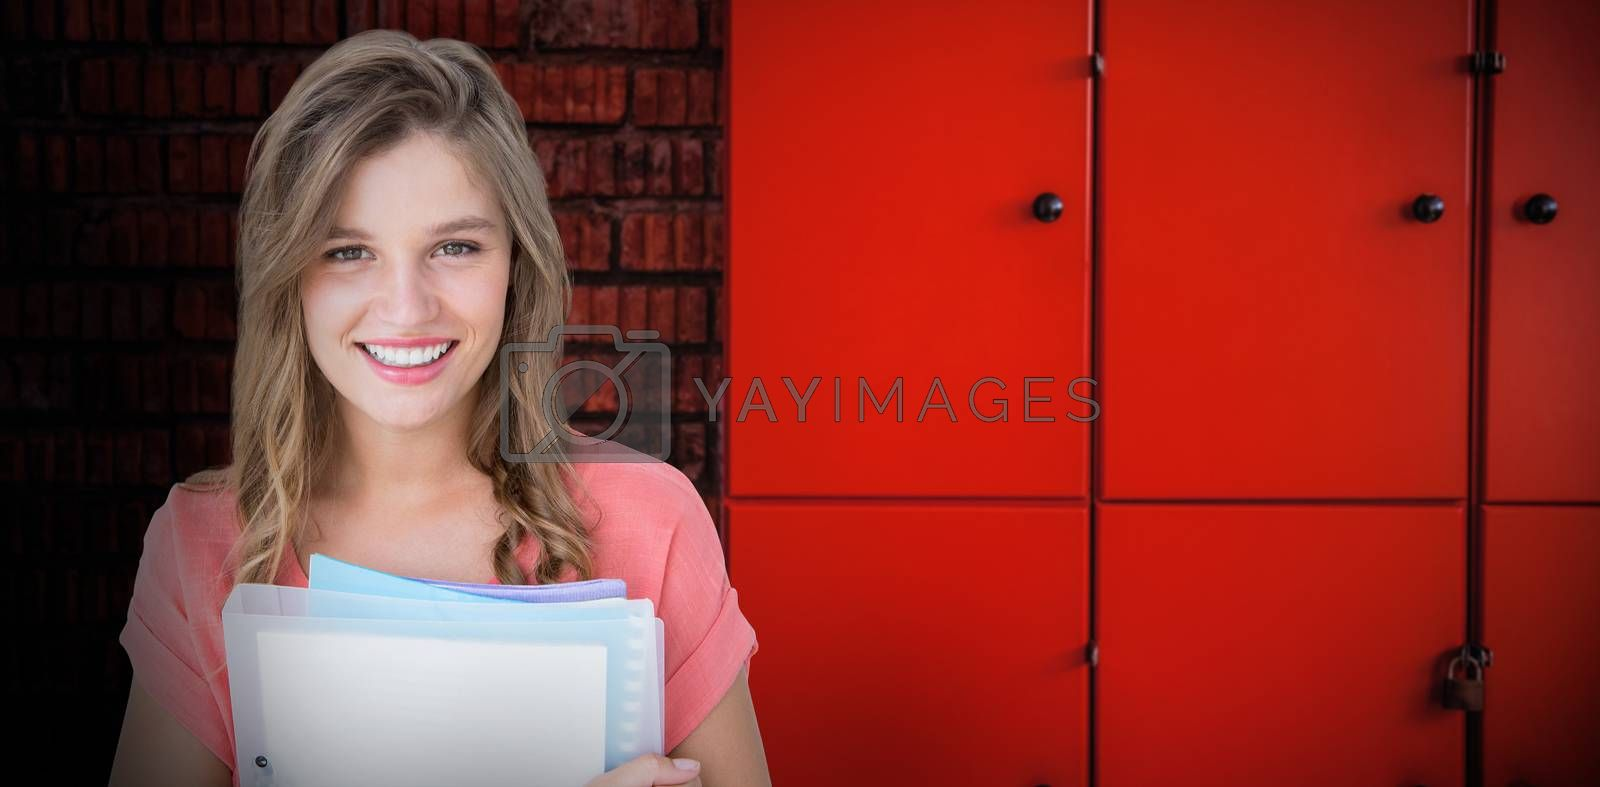 Composite image of smiling hipster holding notebook  by Wavebreakmedia